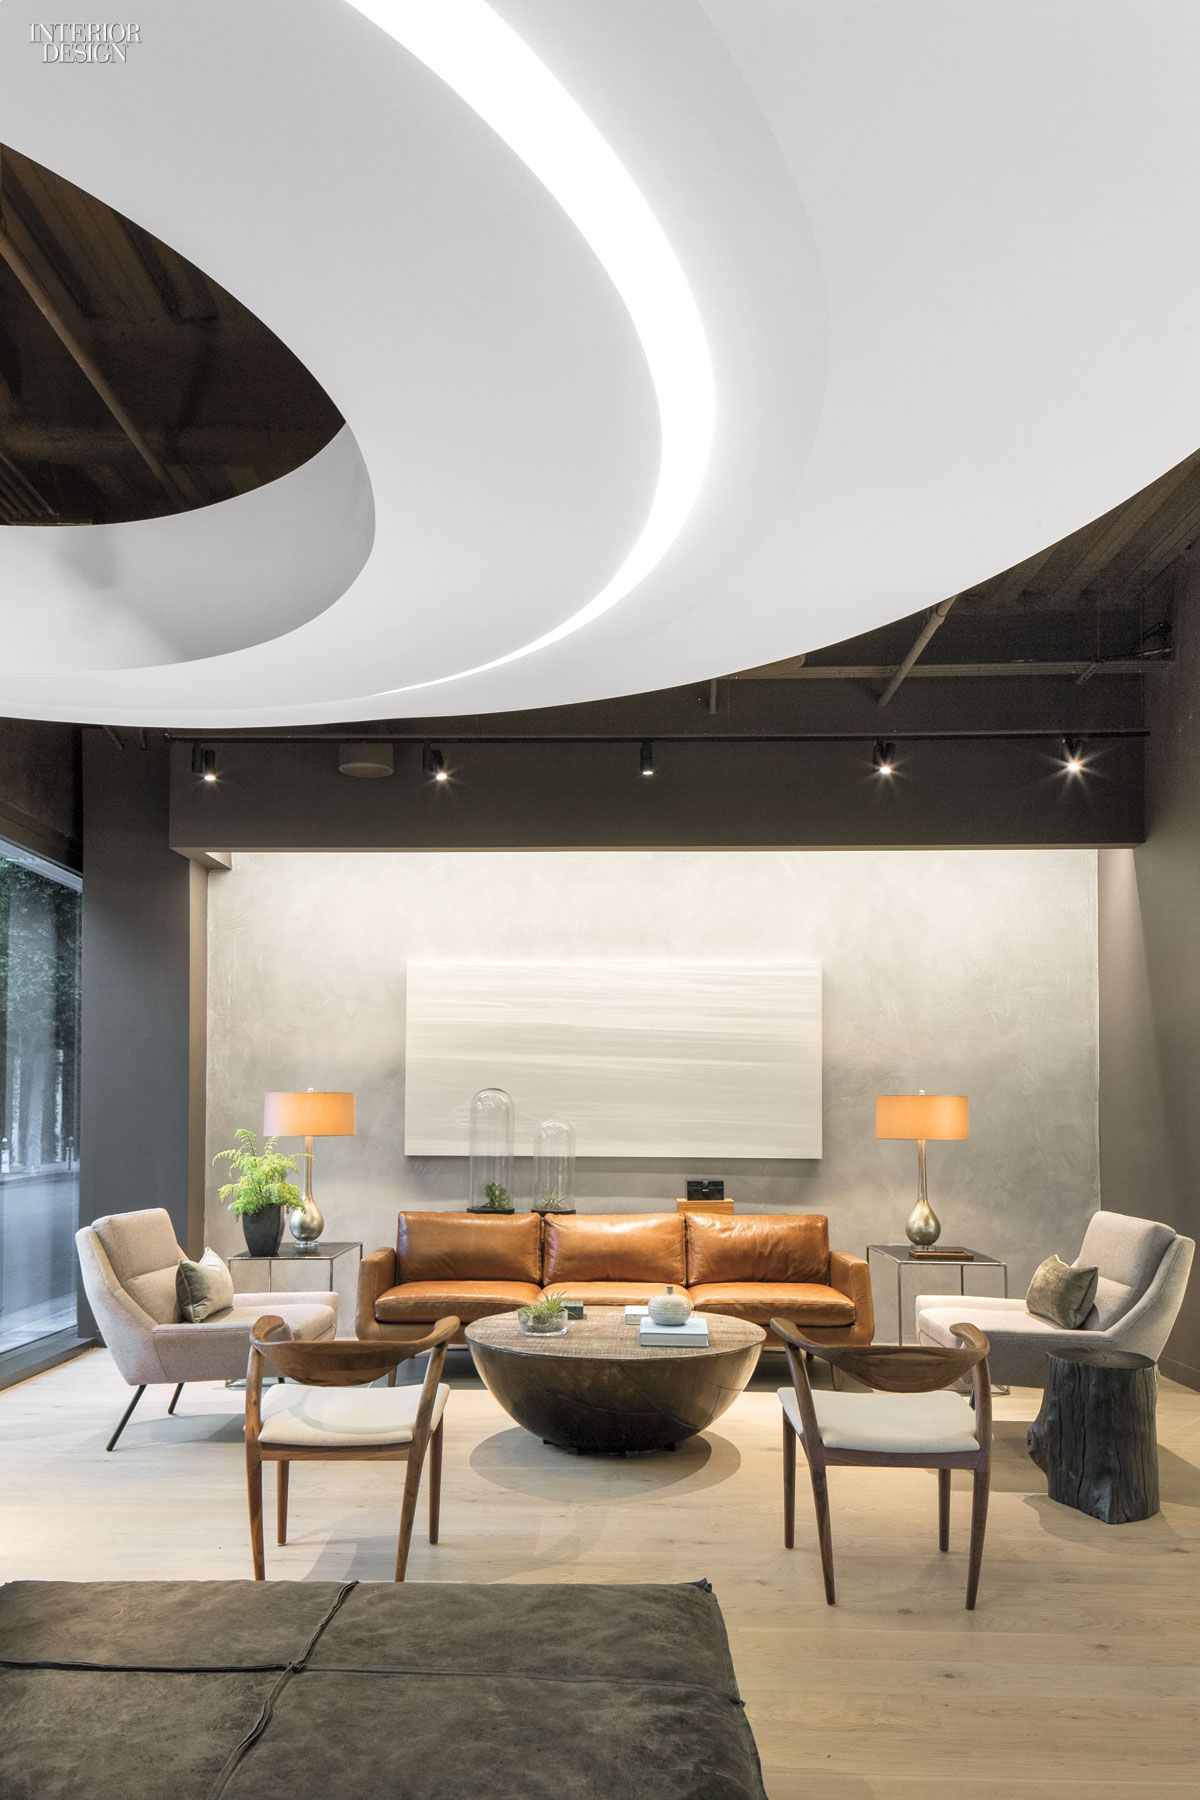 office lounge design. Douglas Elliman Makes A Grand Entrance Onto The L.A. Scene With Its Patrick Tighe-Designed Office Lounge Design